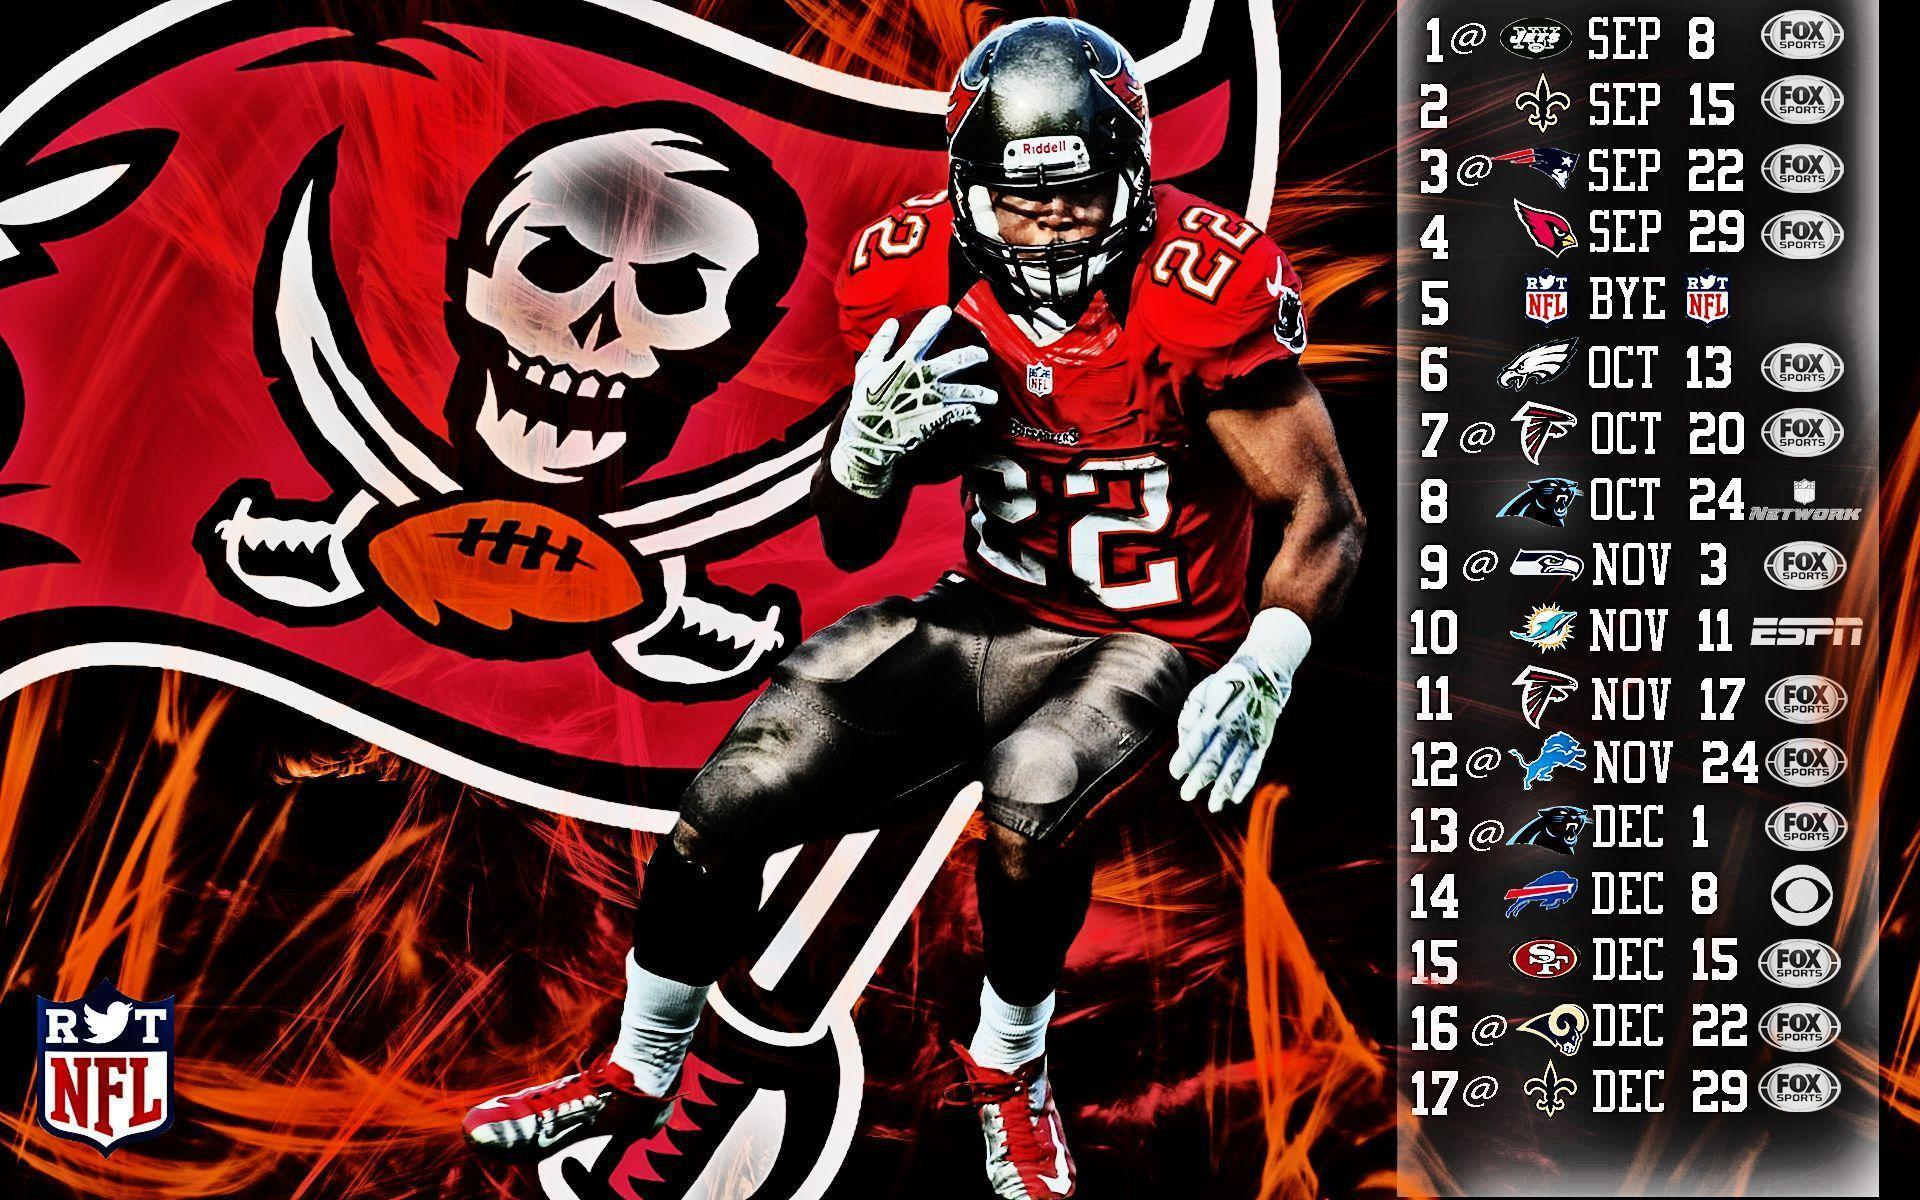 2013 Tampa Bay Buccaneers football nfl wallpaper | 1920x1200 ...